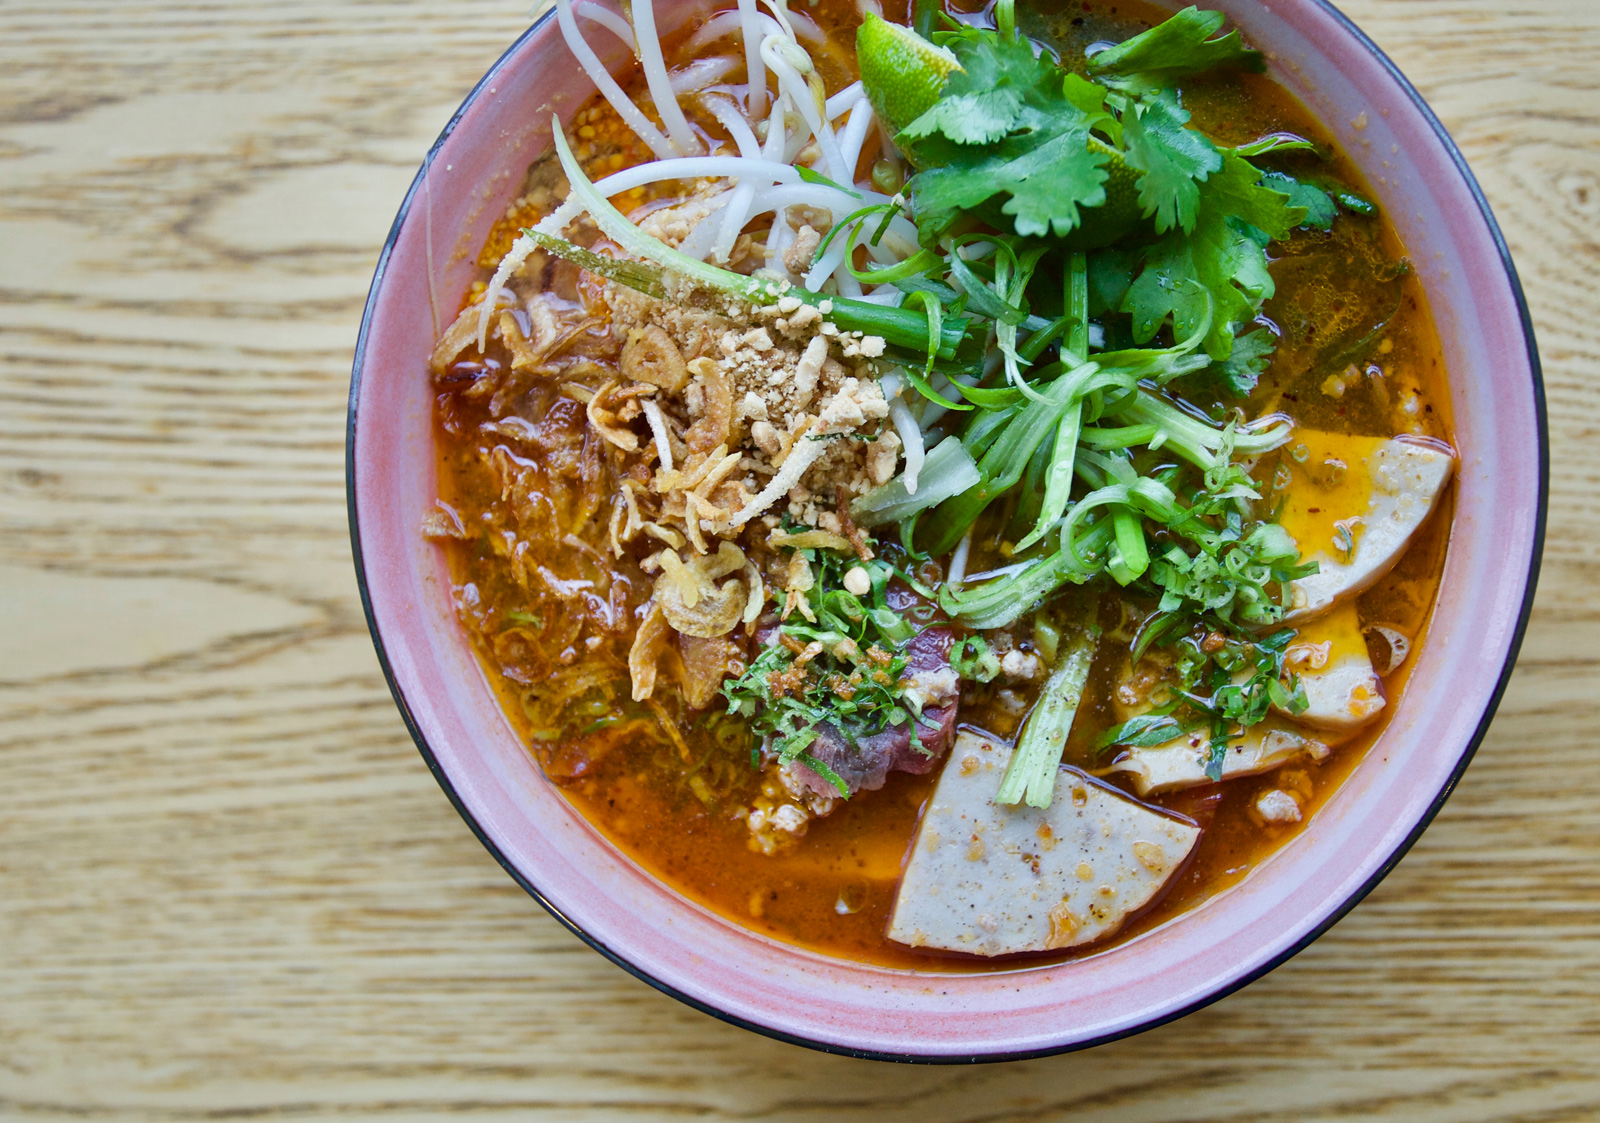 You Need To Try This Crazy Aromatic Hot & Sour Pork Noodle Soup in